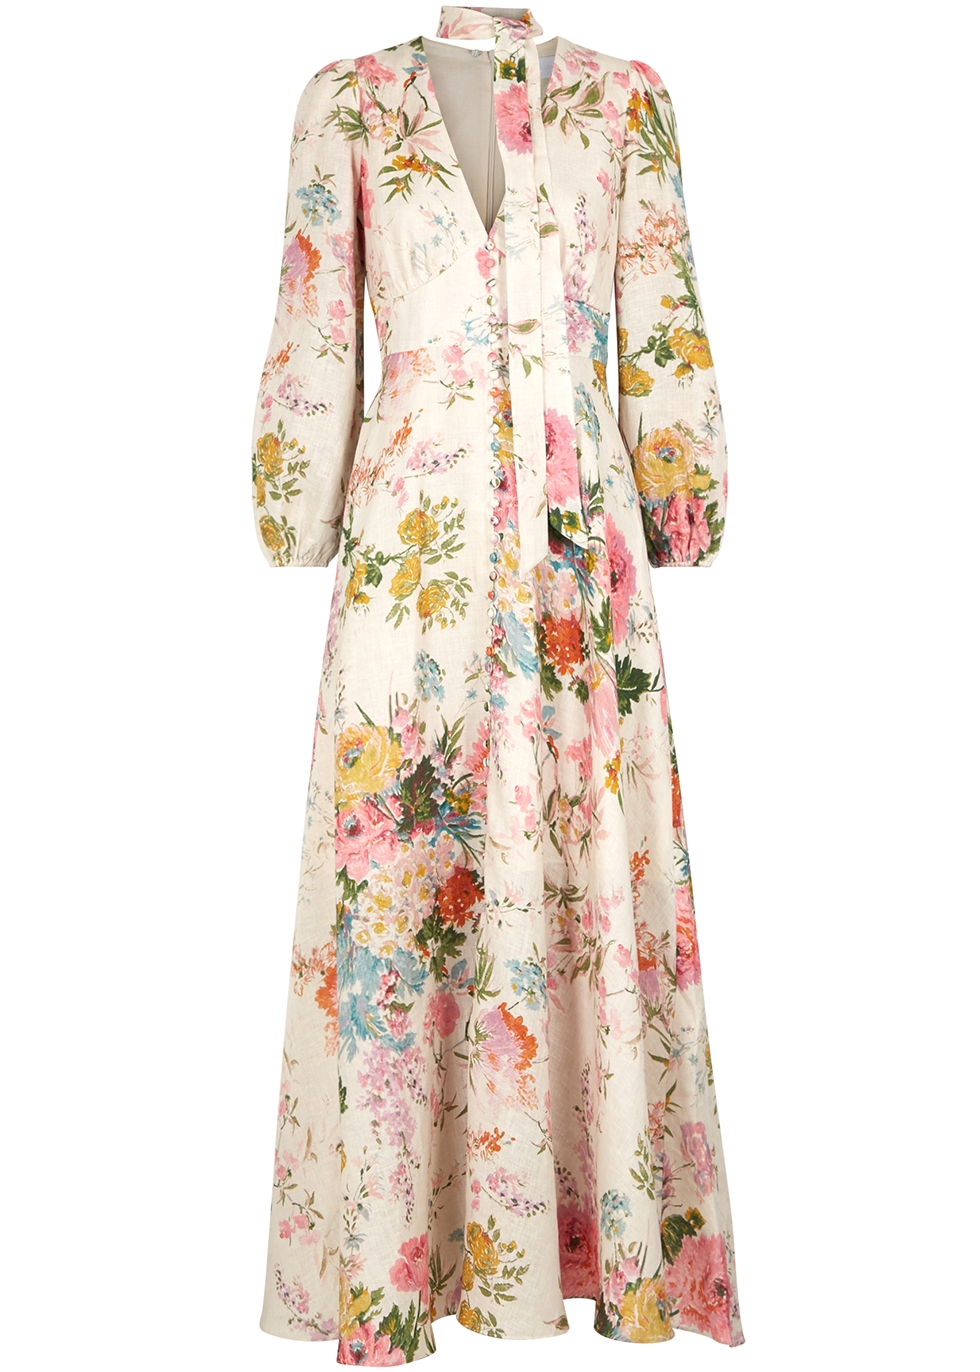 7786c08b0df Zimmermann Heathers printed linen maxi dress - Harvey Nichols